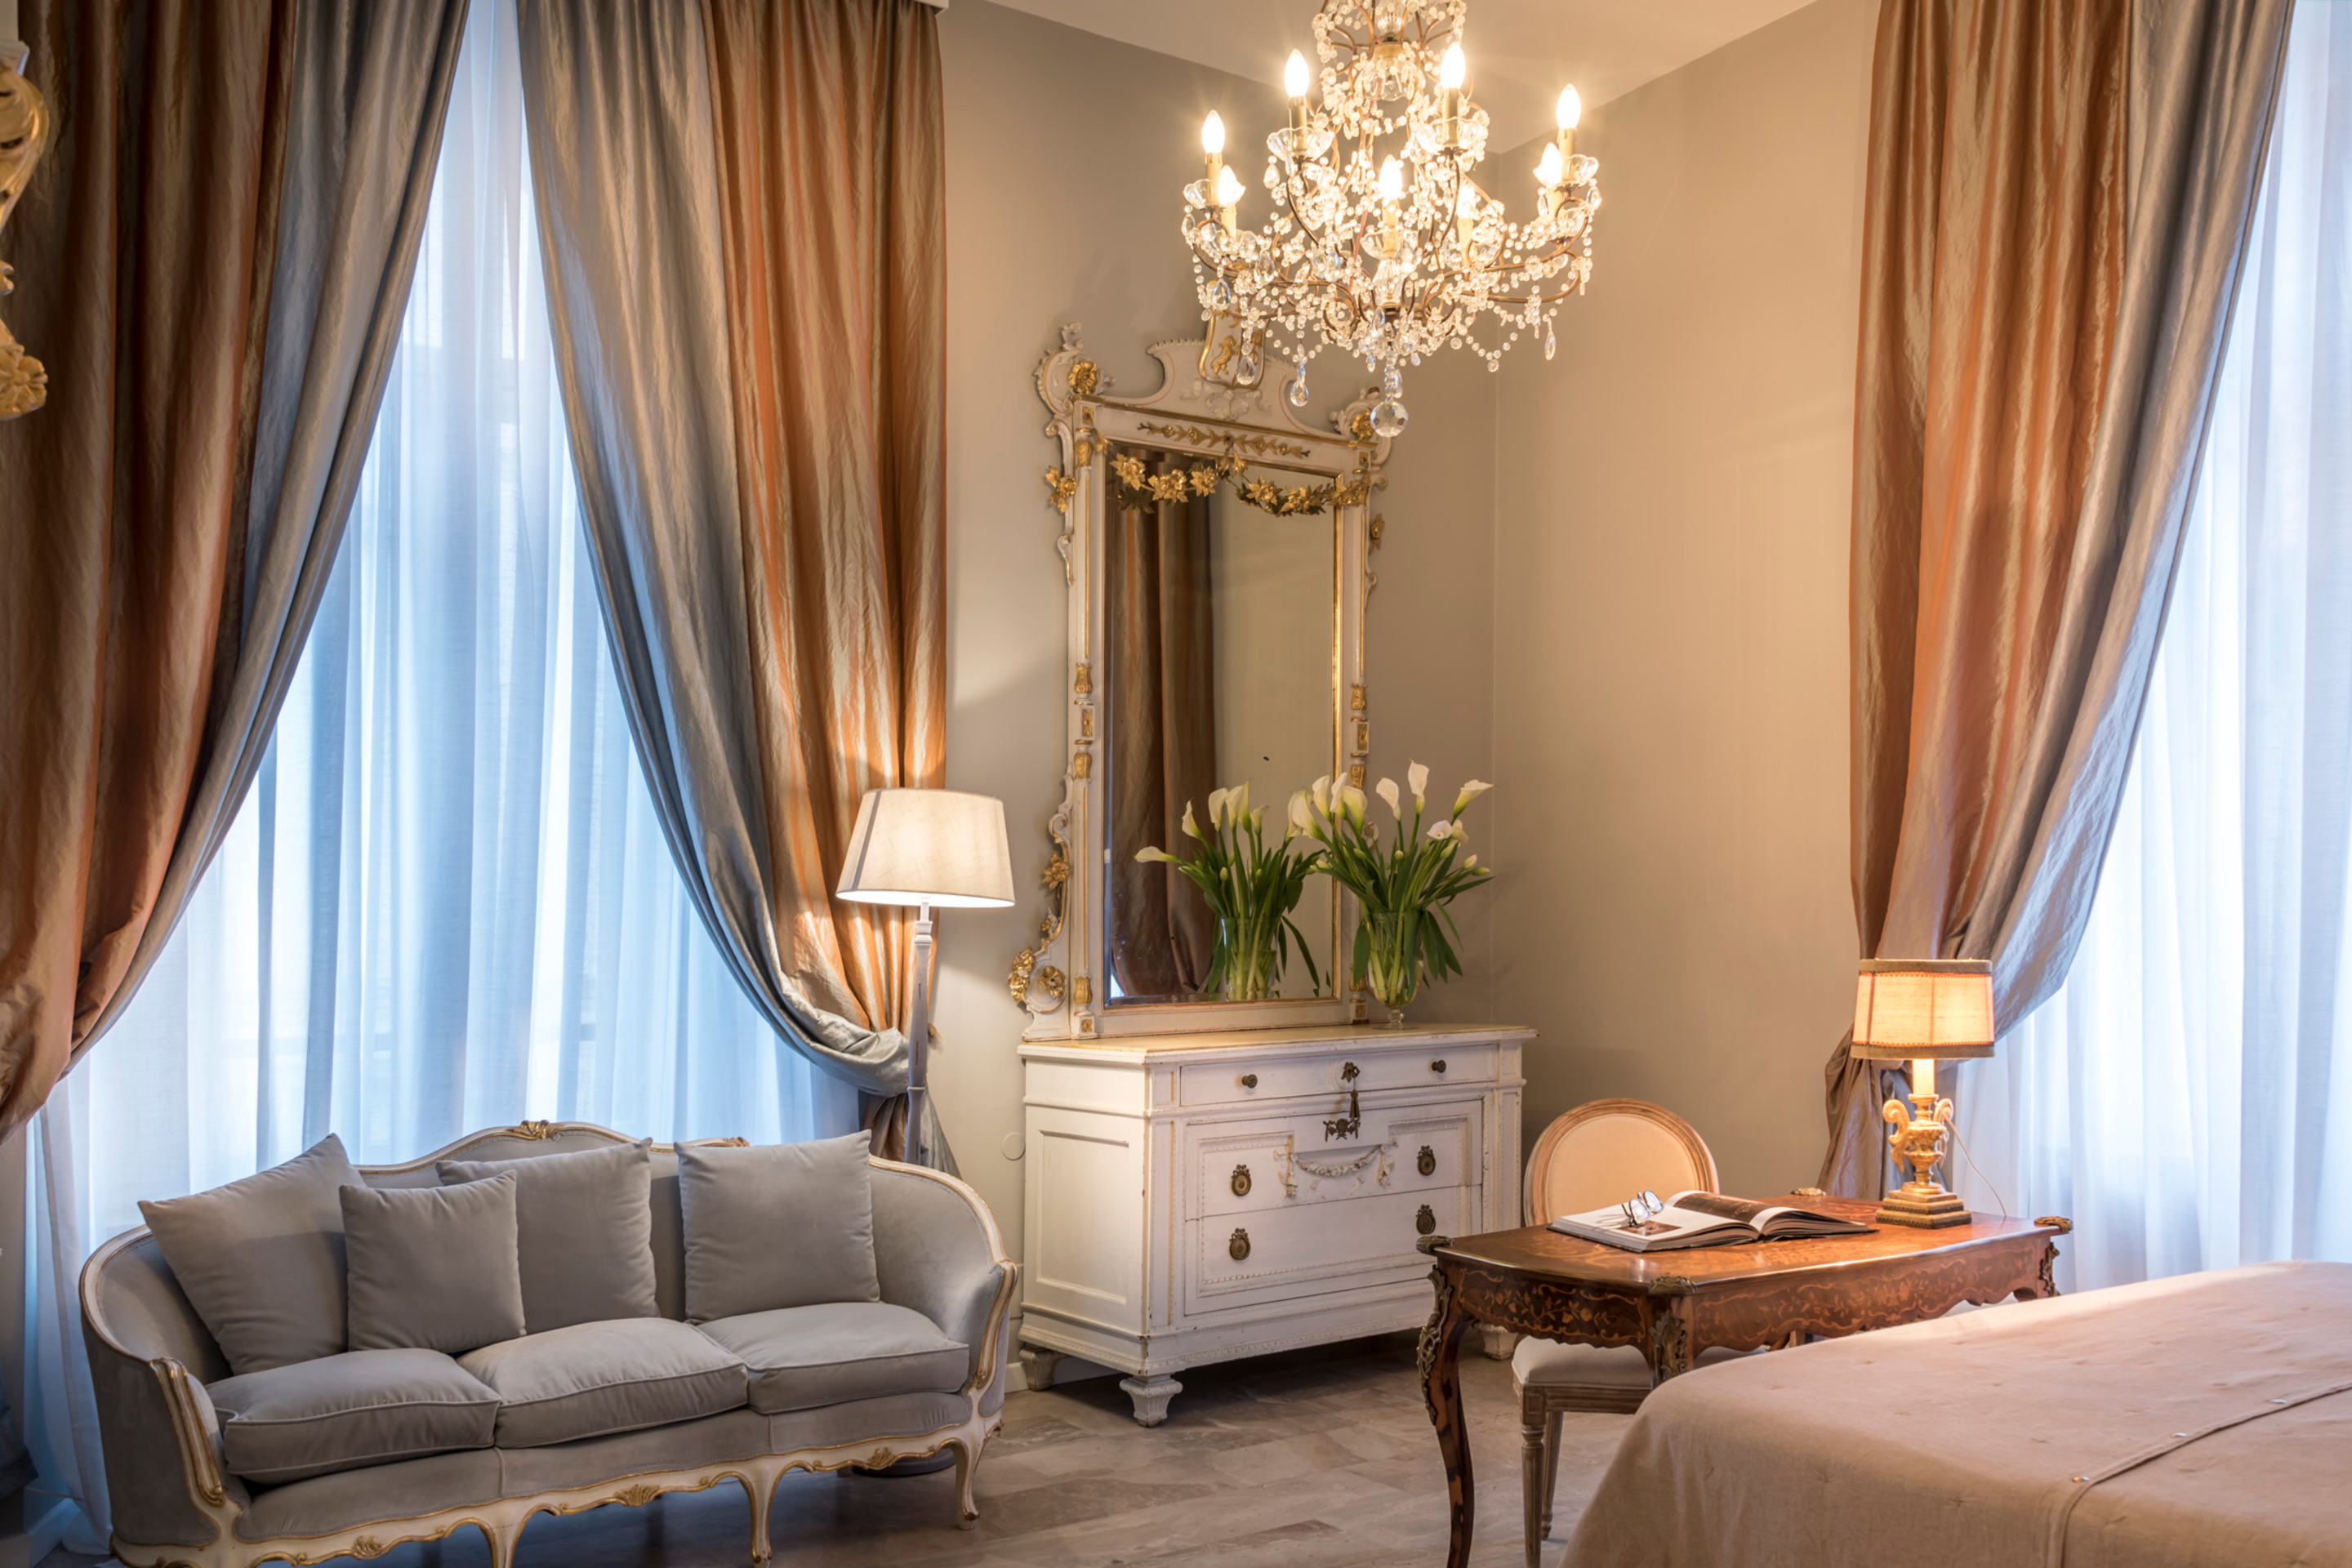 https://www.in-lombardia.it/sites/default/files/accomodation/gallery/101742/41860/arnaboldi_palace_suite_2_-_particolare.jpg